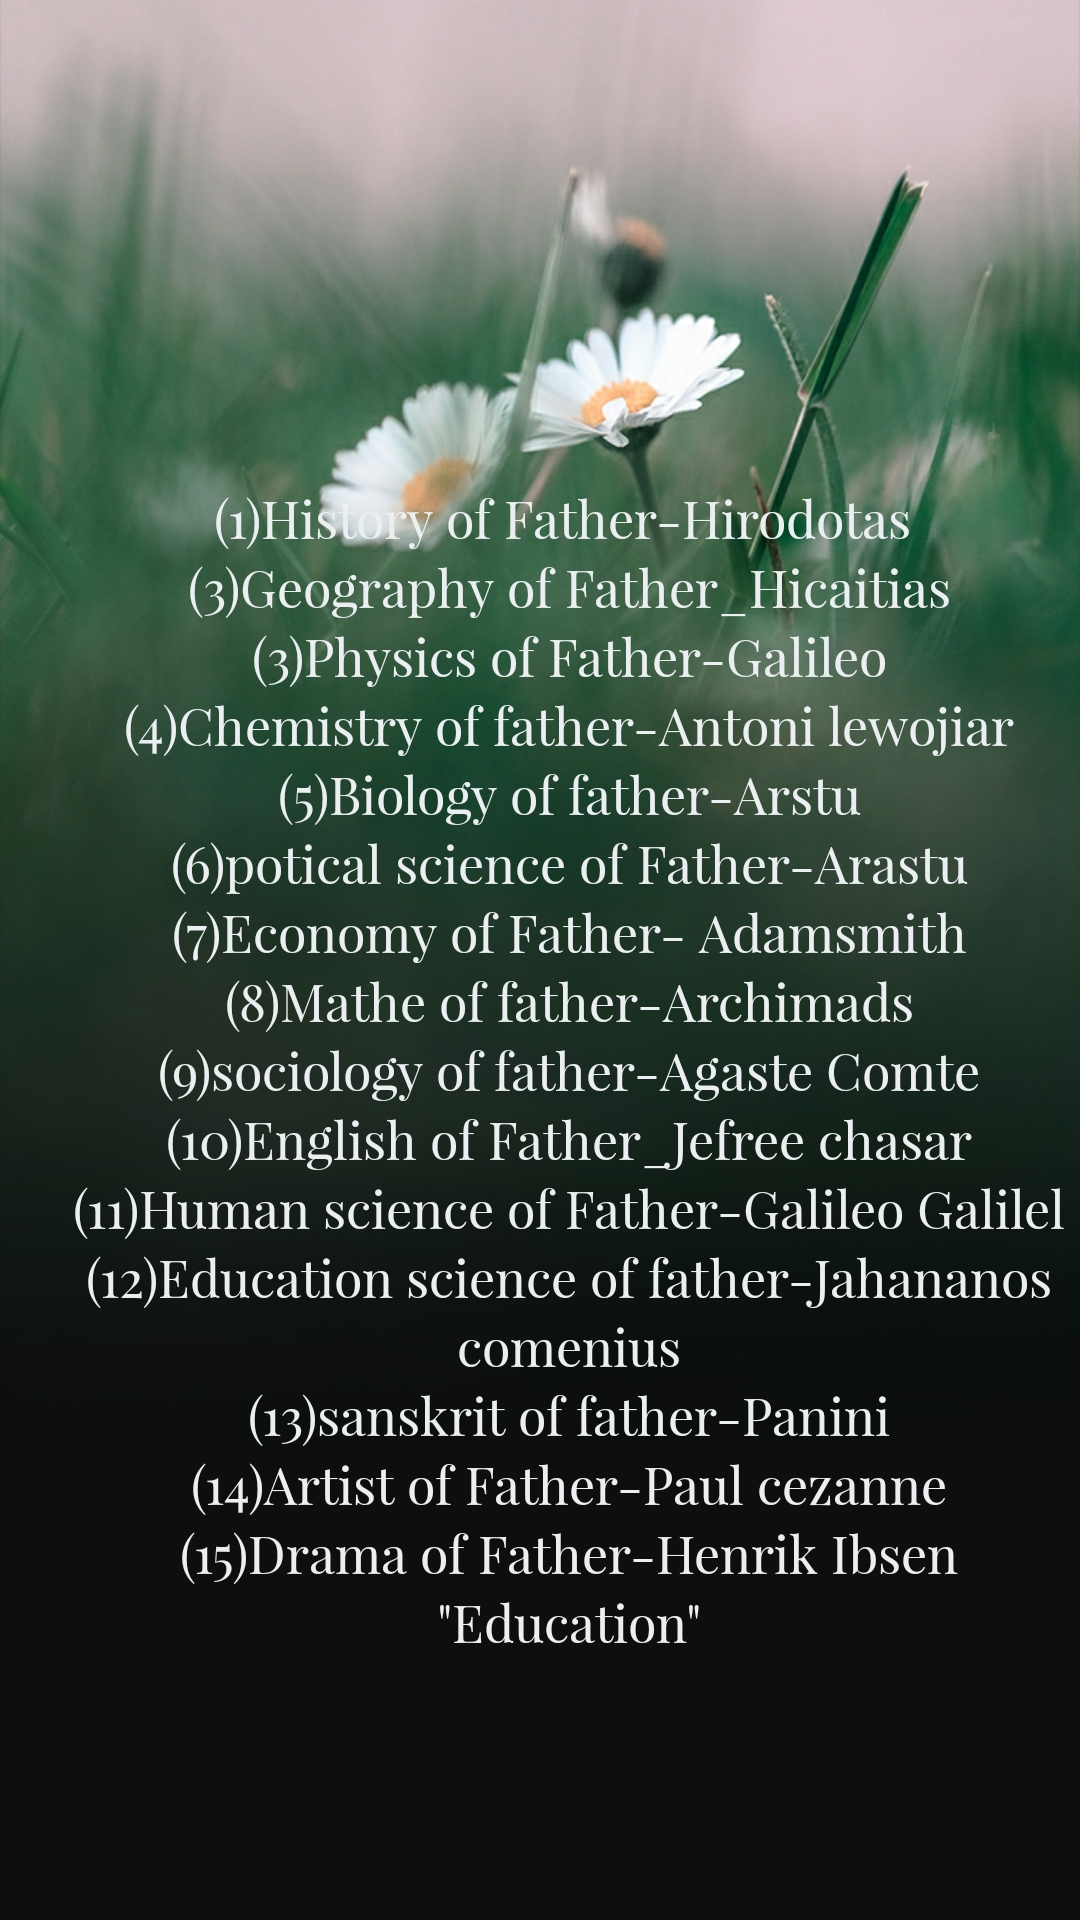 "(1)History of Father-Hirodotas  (3)Geography of Father_Hicaitias (3)Physics of Father-Galileo (4)Chemistry of father-Antoni lewojiar (5)Biology of father-Arstu (6)potical science of Father-Arastu (7)Economy of Father- Adamsmith (8)Mathe of father-Archimads (9)sociology of father-Agaste Comte (10)English of Father_Jefree chasar (11)Human science of Father-Galileo Galilel (12)Education science of father-Jahananos comenius (13)sanskrit of father-Panini (14)Artist of Father-Paul cezanne (15)Drama of Father-Henrik Ibsen ""Education"""